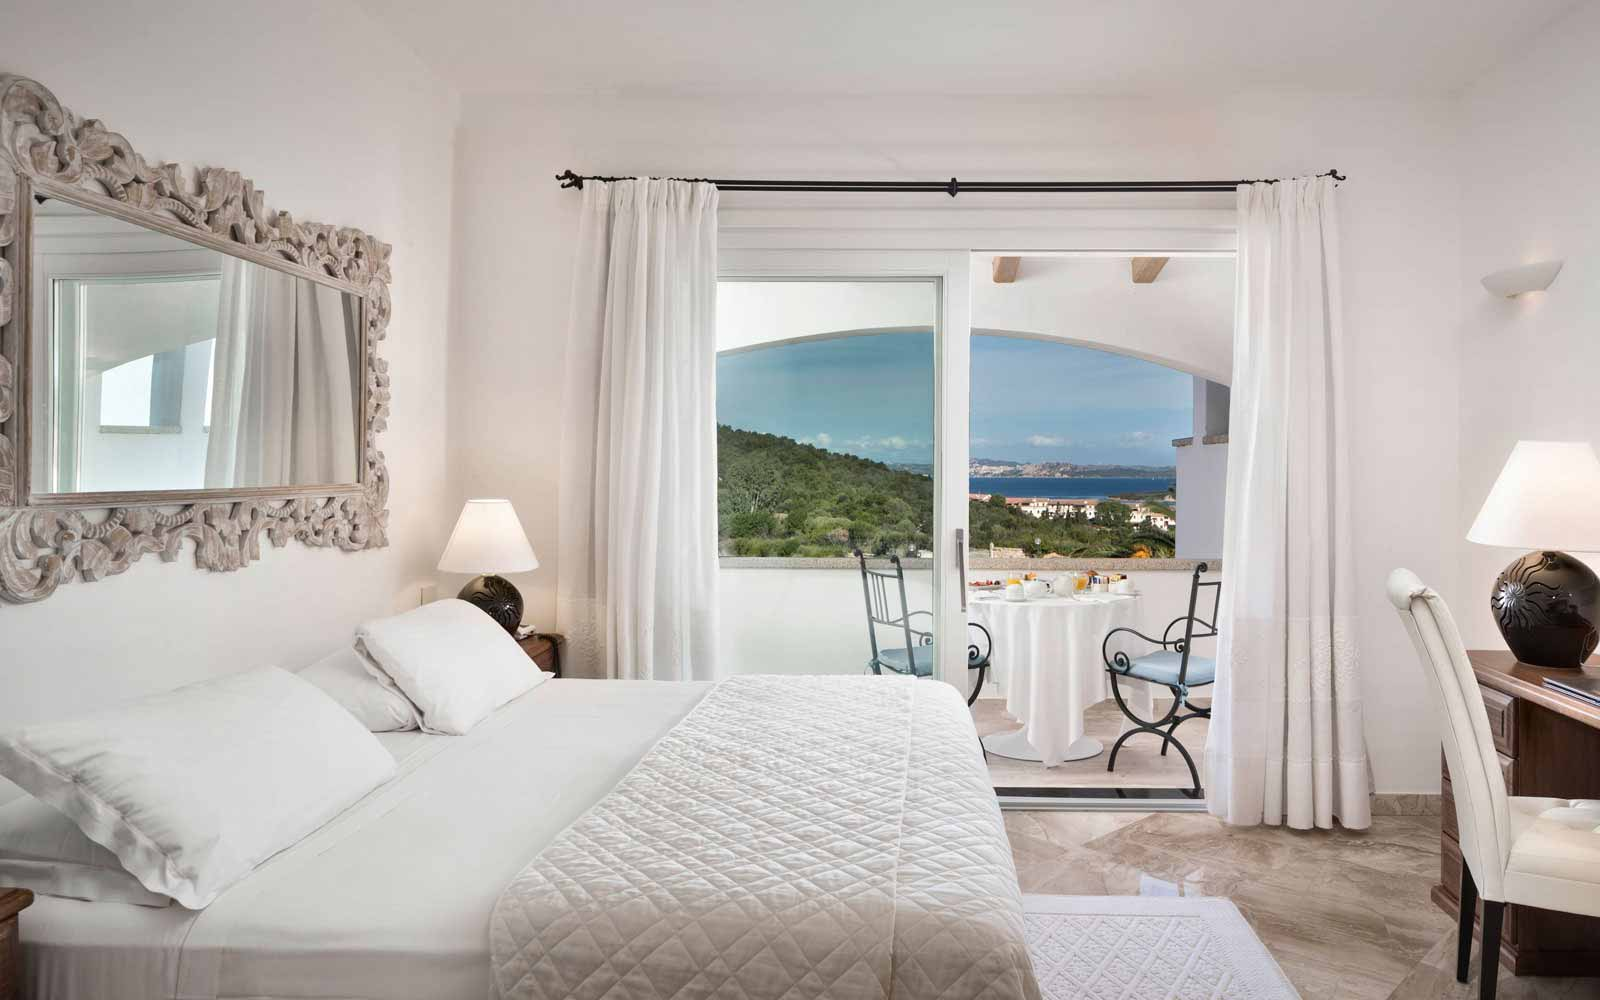 Premium Room with Sea View at Hotel La Rocca Resort & Spa